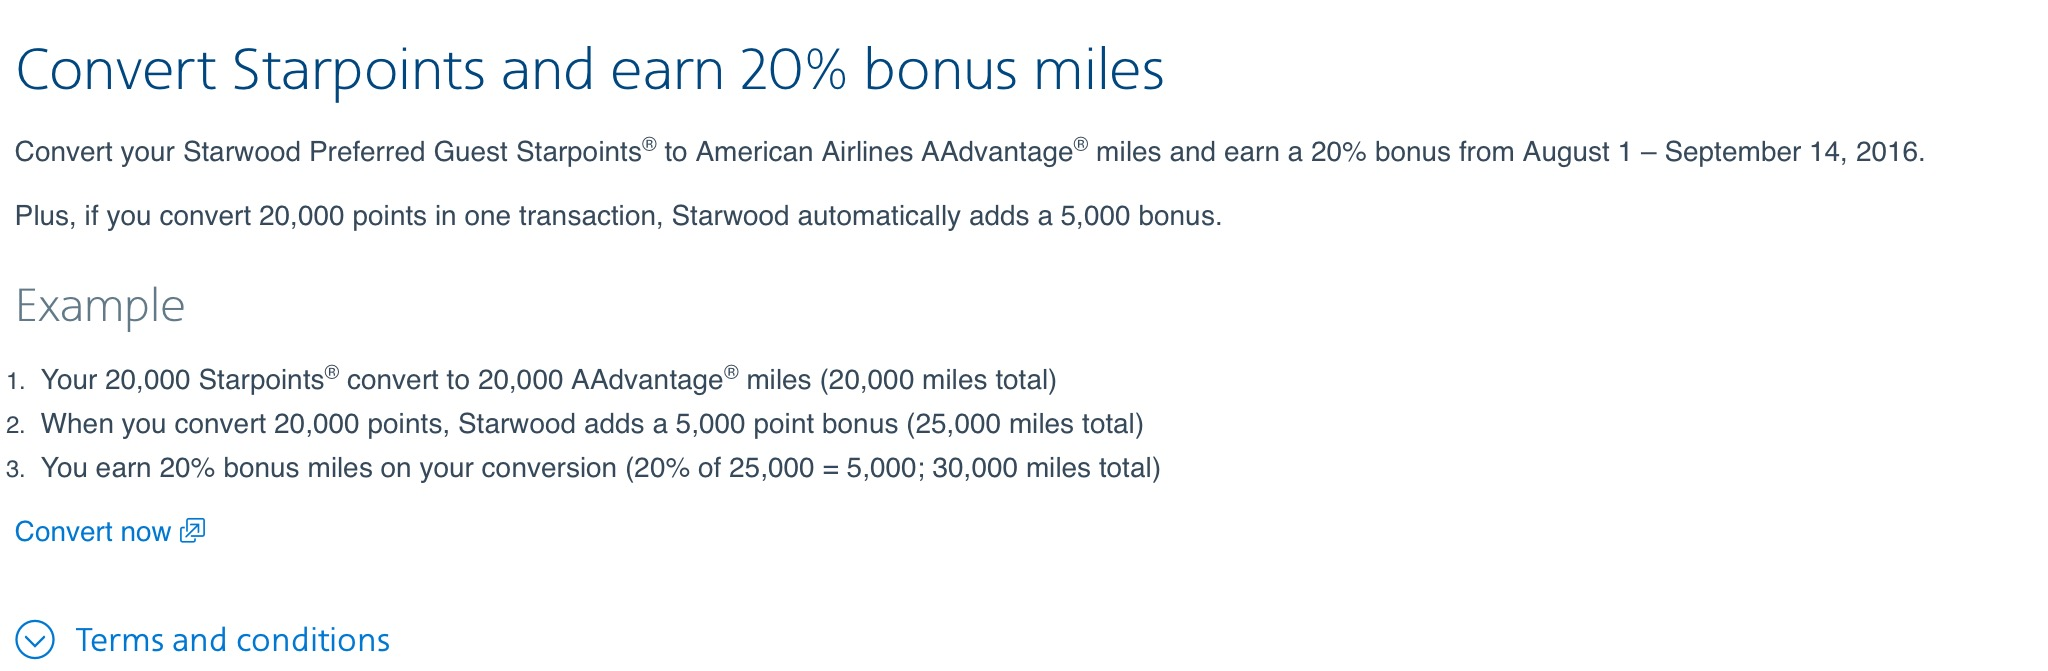 Earn additional 20% when converting SPG to AA mile... - myFICO ...